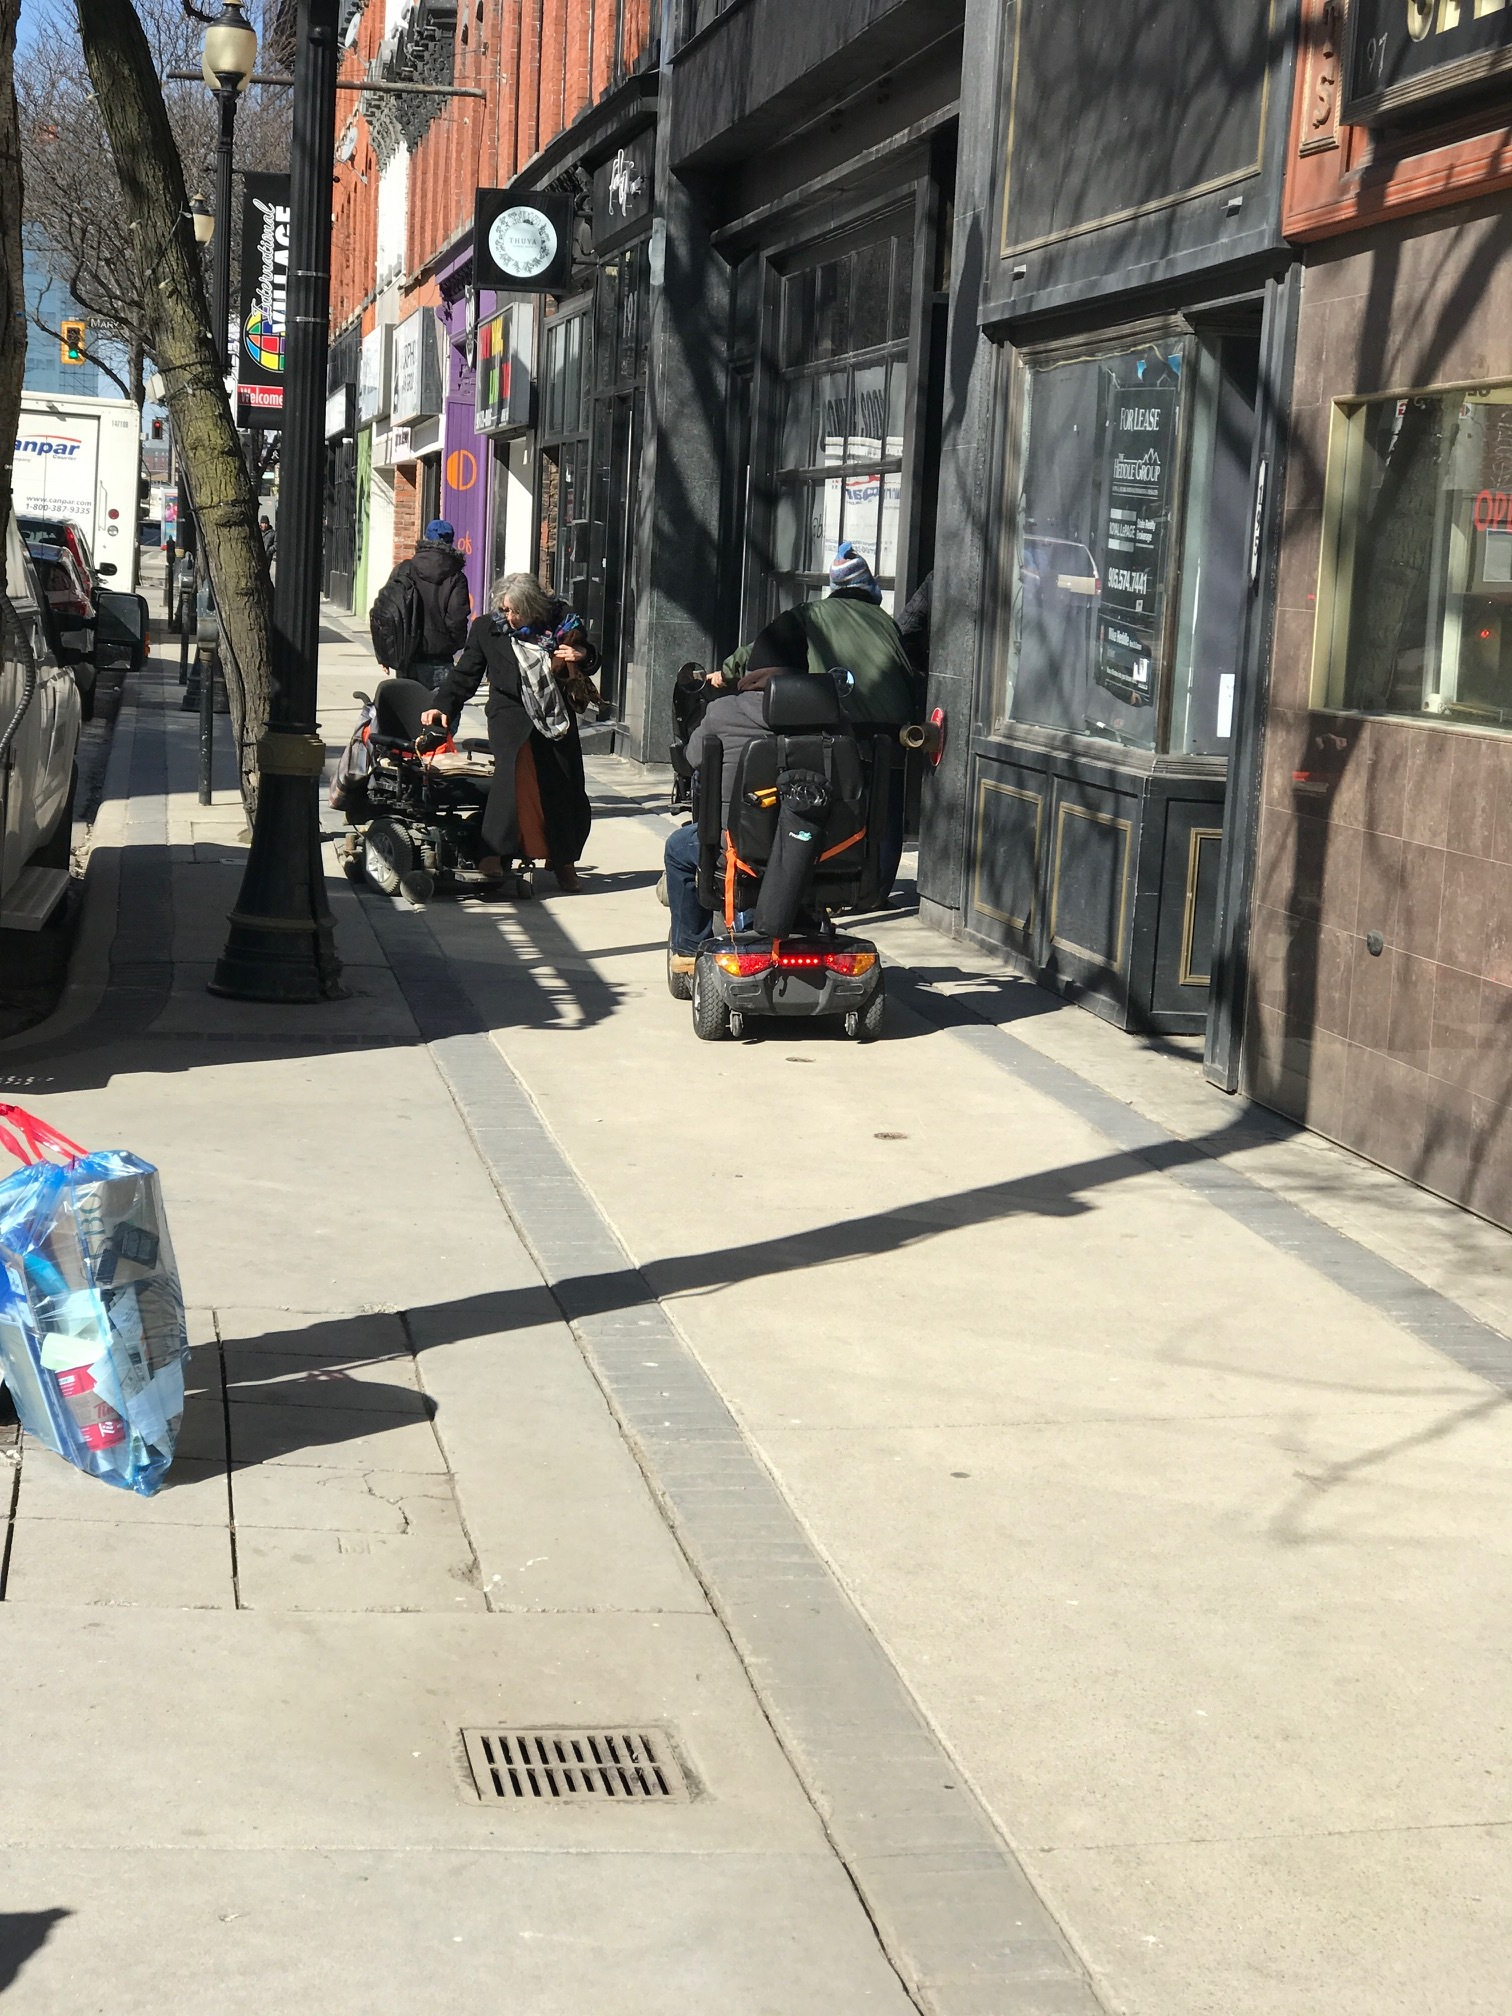 One of the strangest things about Hamilton's City Centre is the number of scooters you encounte r.   They replace the mega strollers of cities like Calgary.